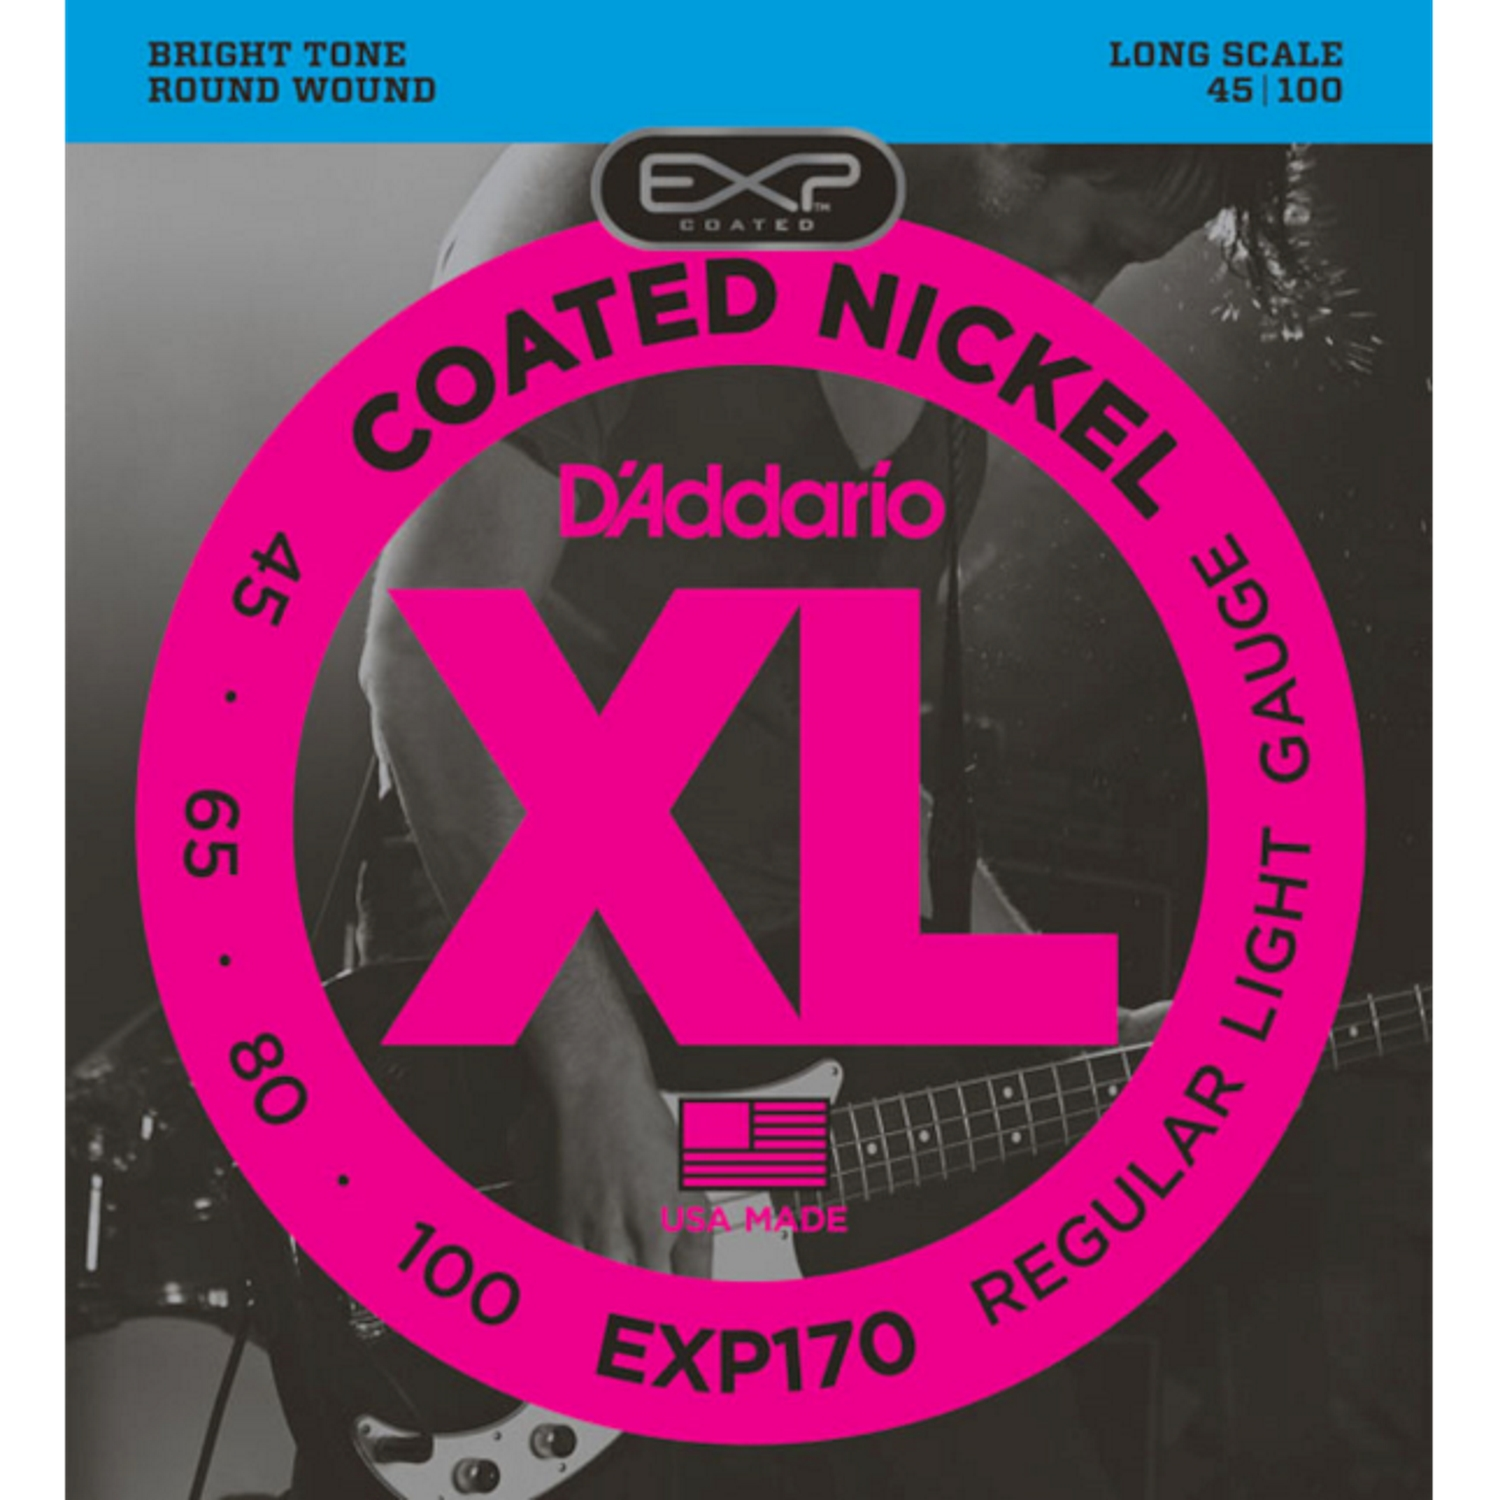 DAddario EXP-170 Coated, E-Bass 045-100 212120